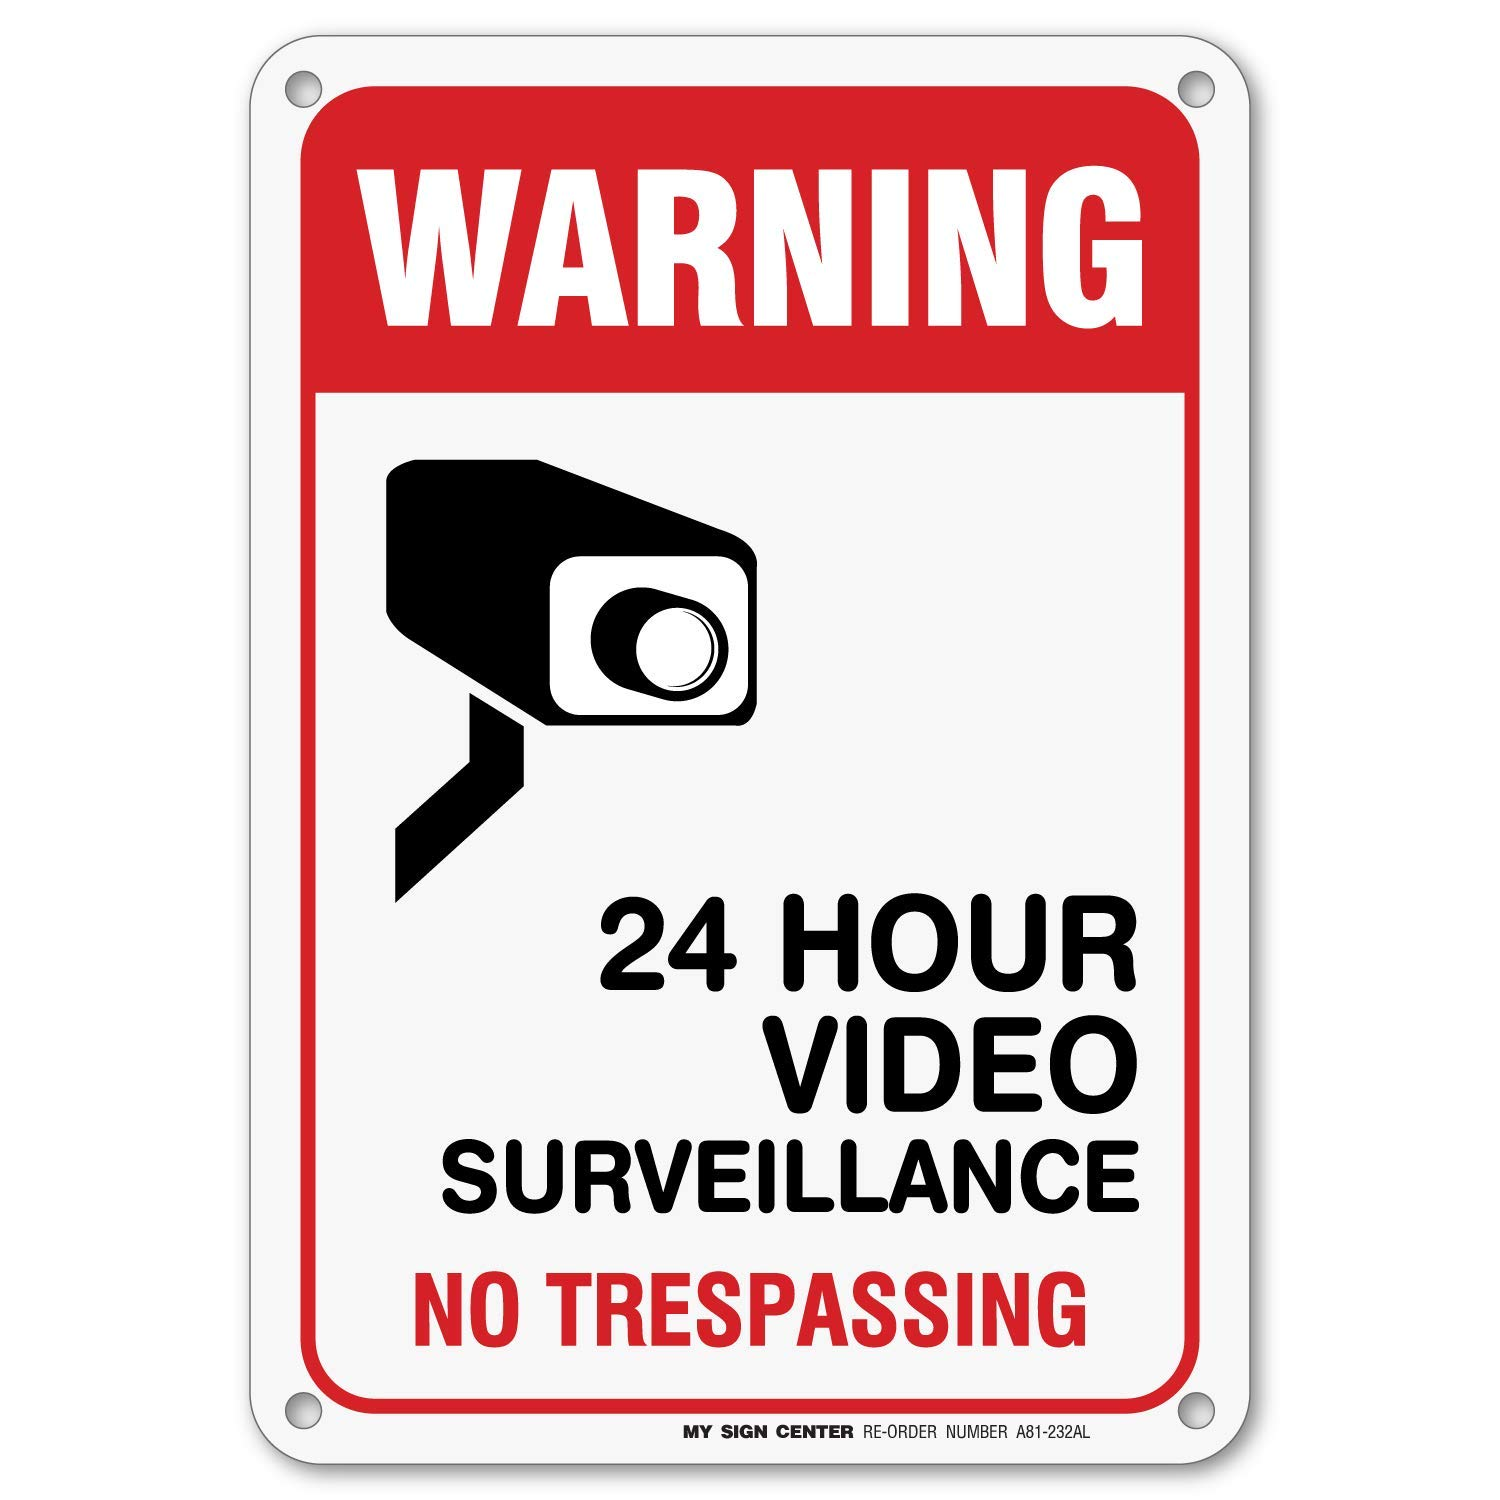 Warning 24 Hour Video Surveillance No Trespassing Sign - Private Property  Signs 10